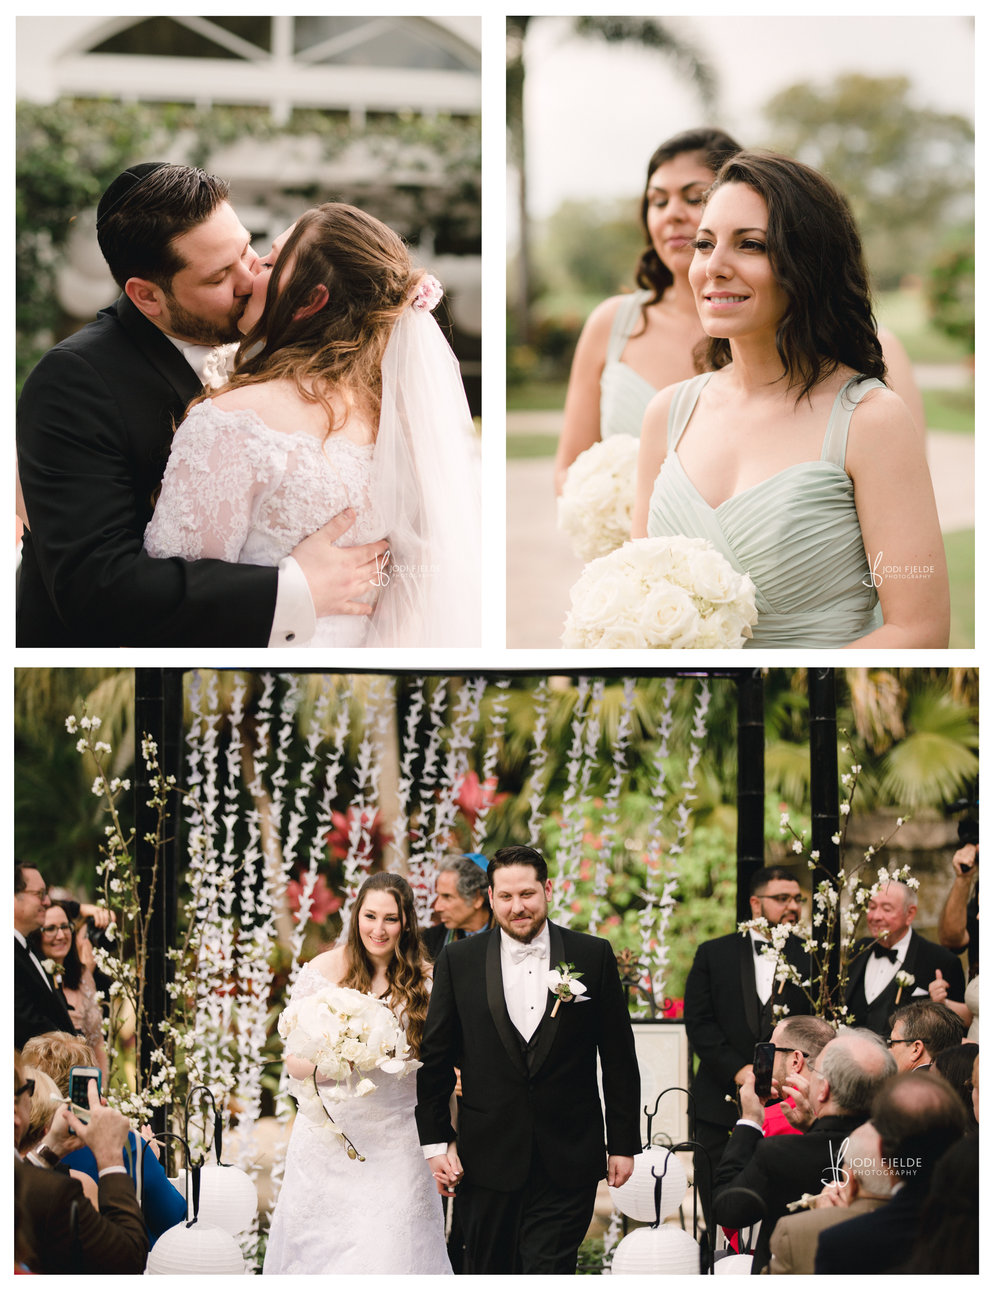 Deer_Creek_Country_Club_Wedding_Jodi_Fjelde_Photography_Andrea_Jason_12.jpg